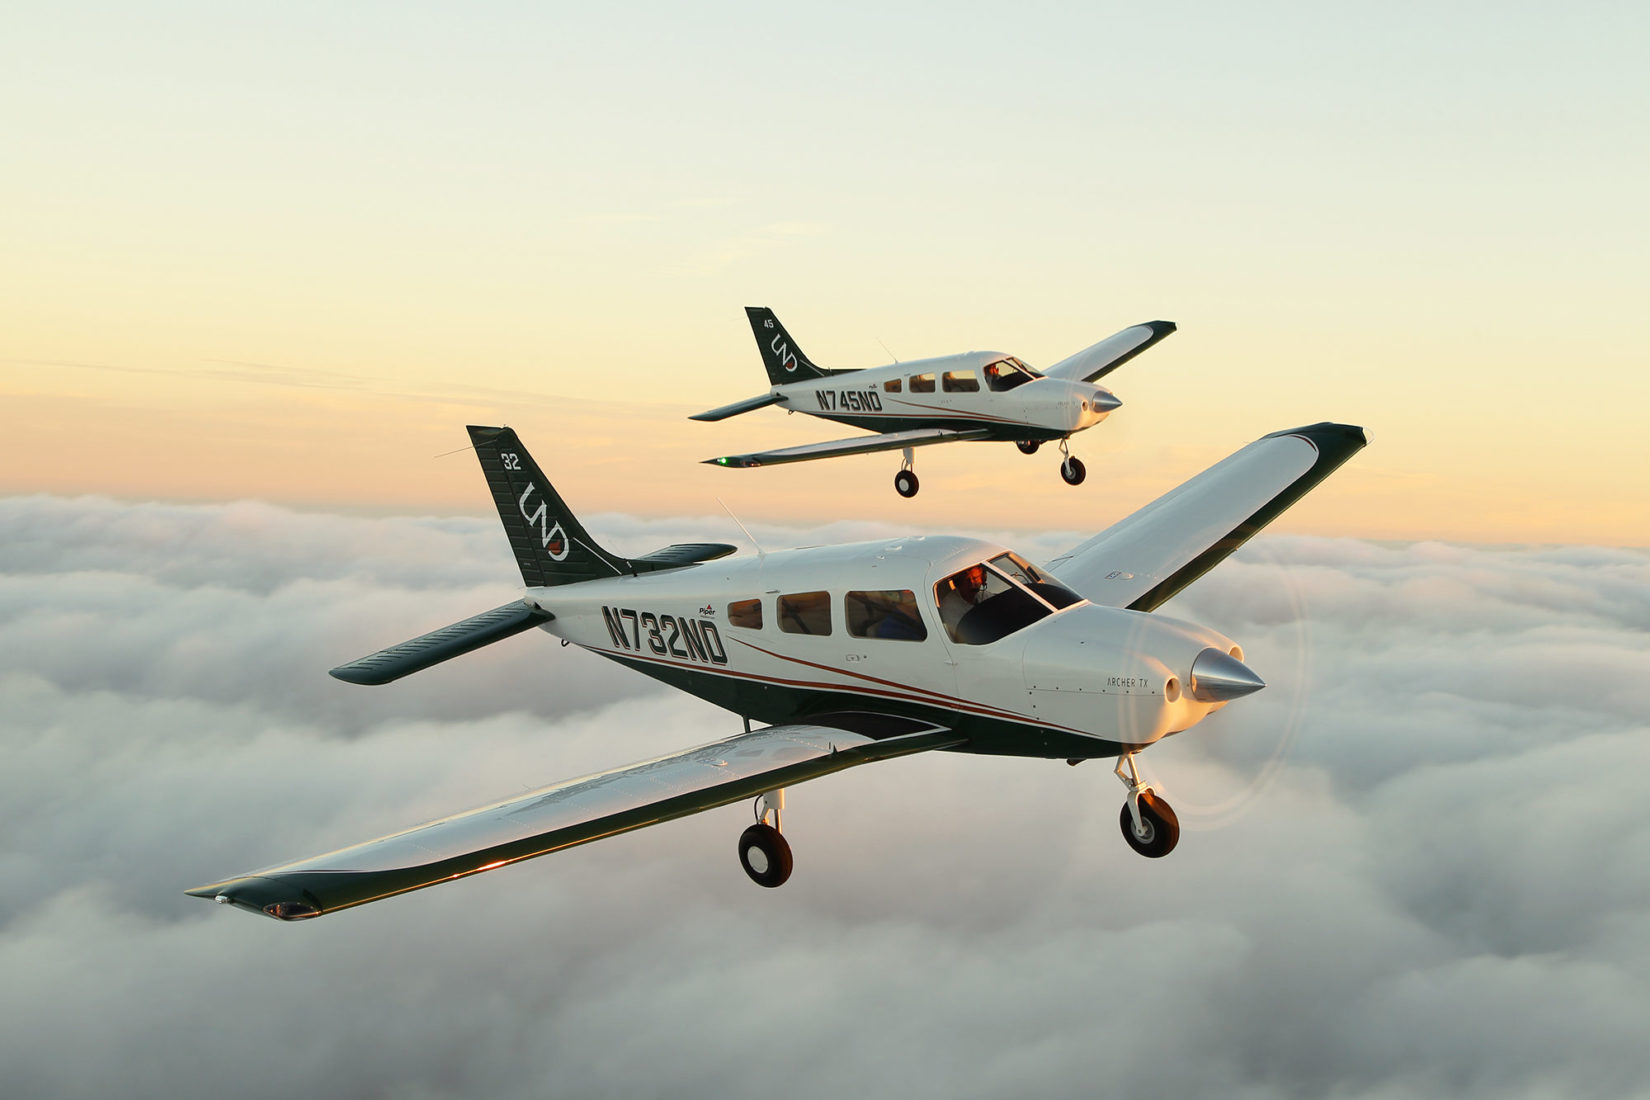 Two aircraft flying, both Archer TX trainer class from Piper Aircraft